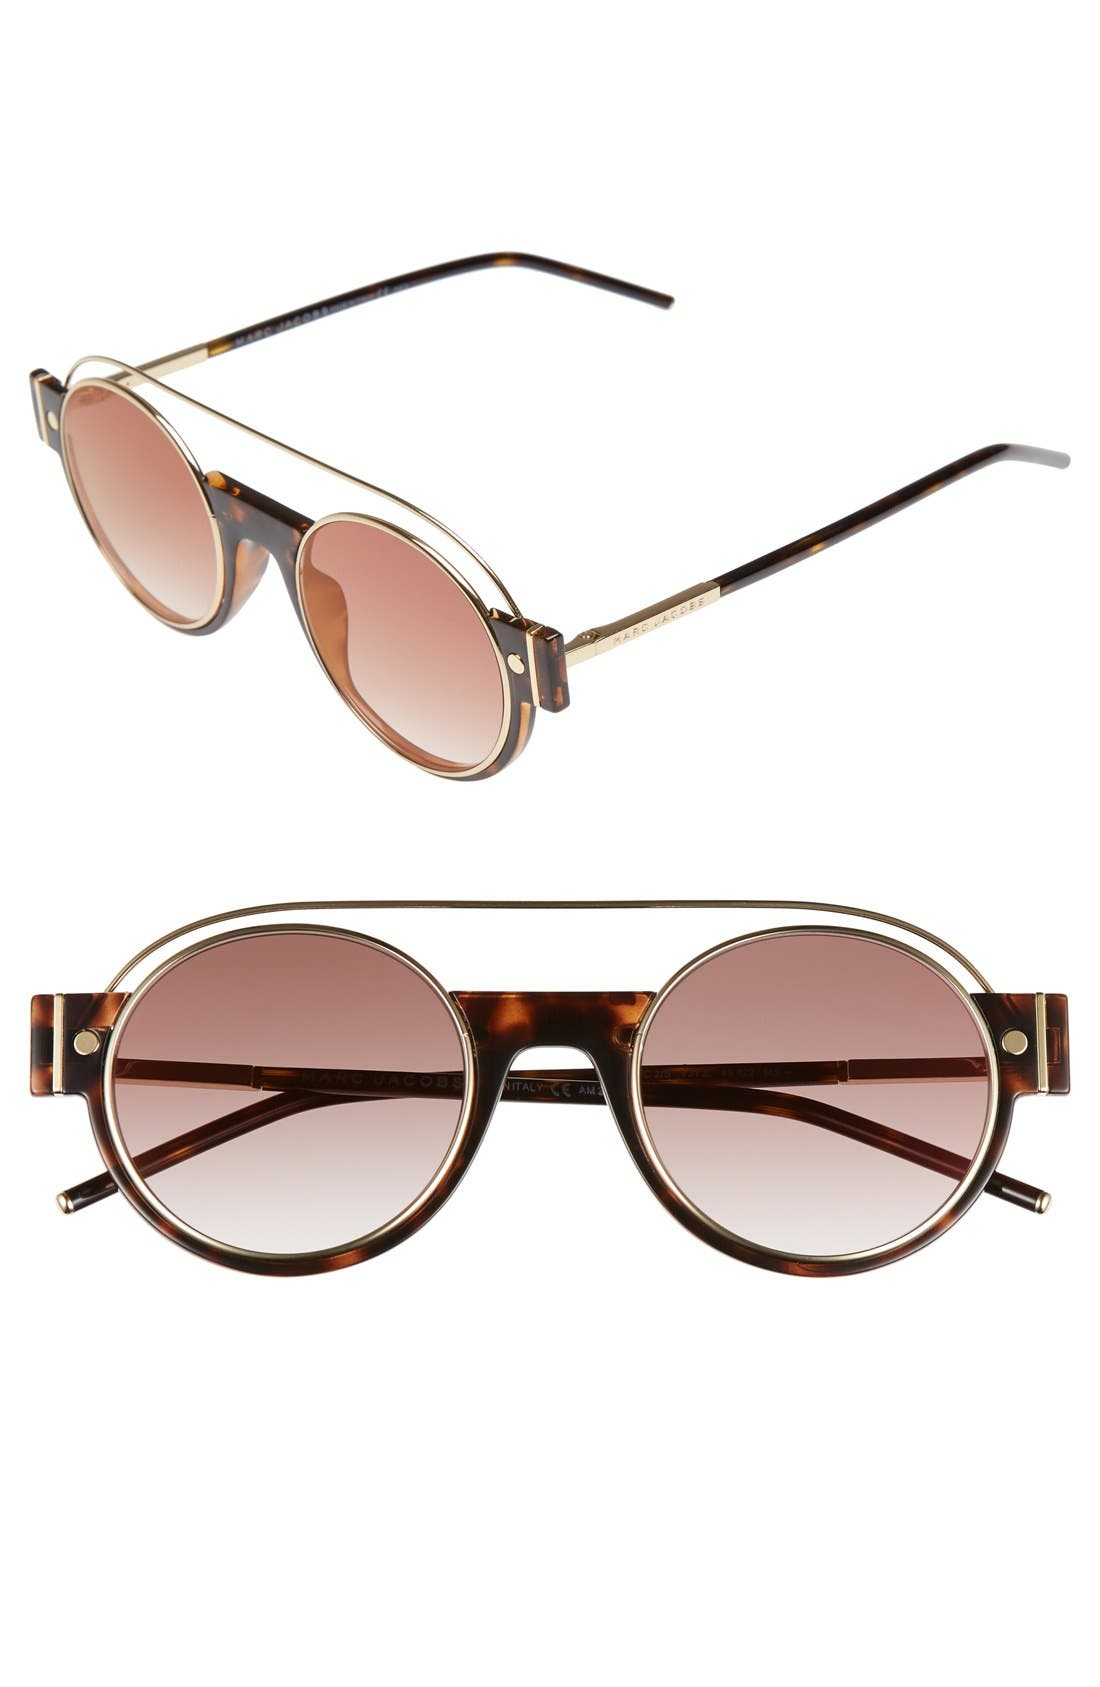 Main Image - MARC JACOBS 49mm Round Sunglasses